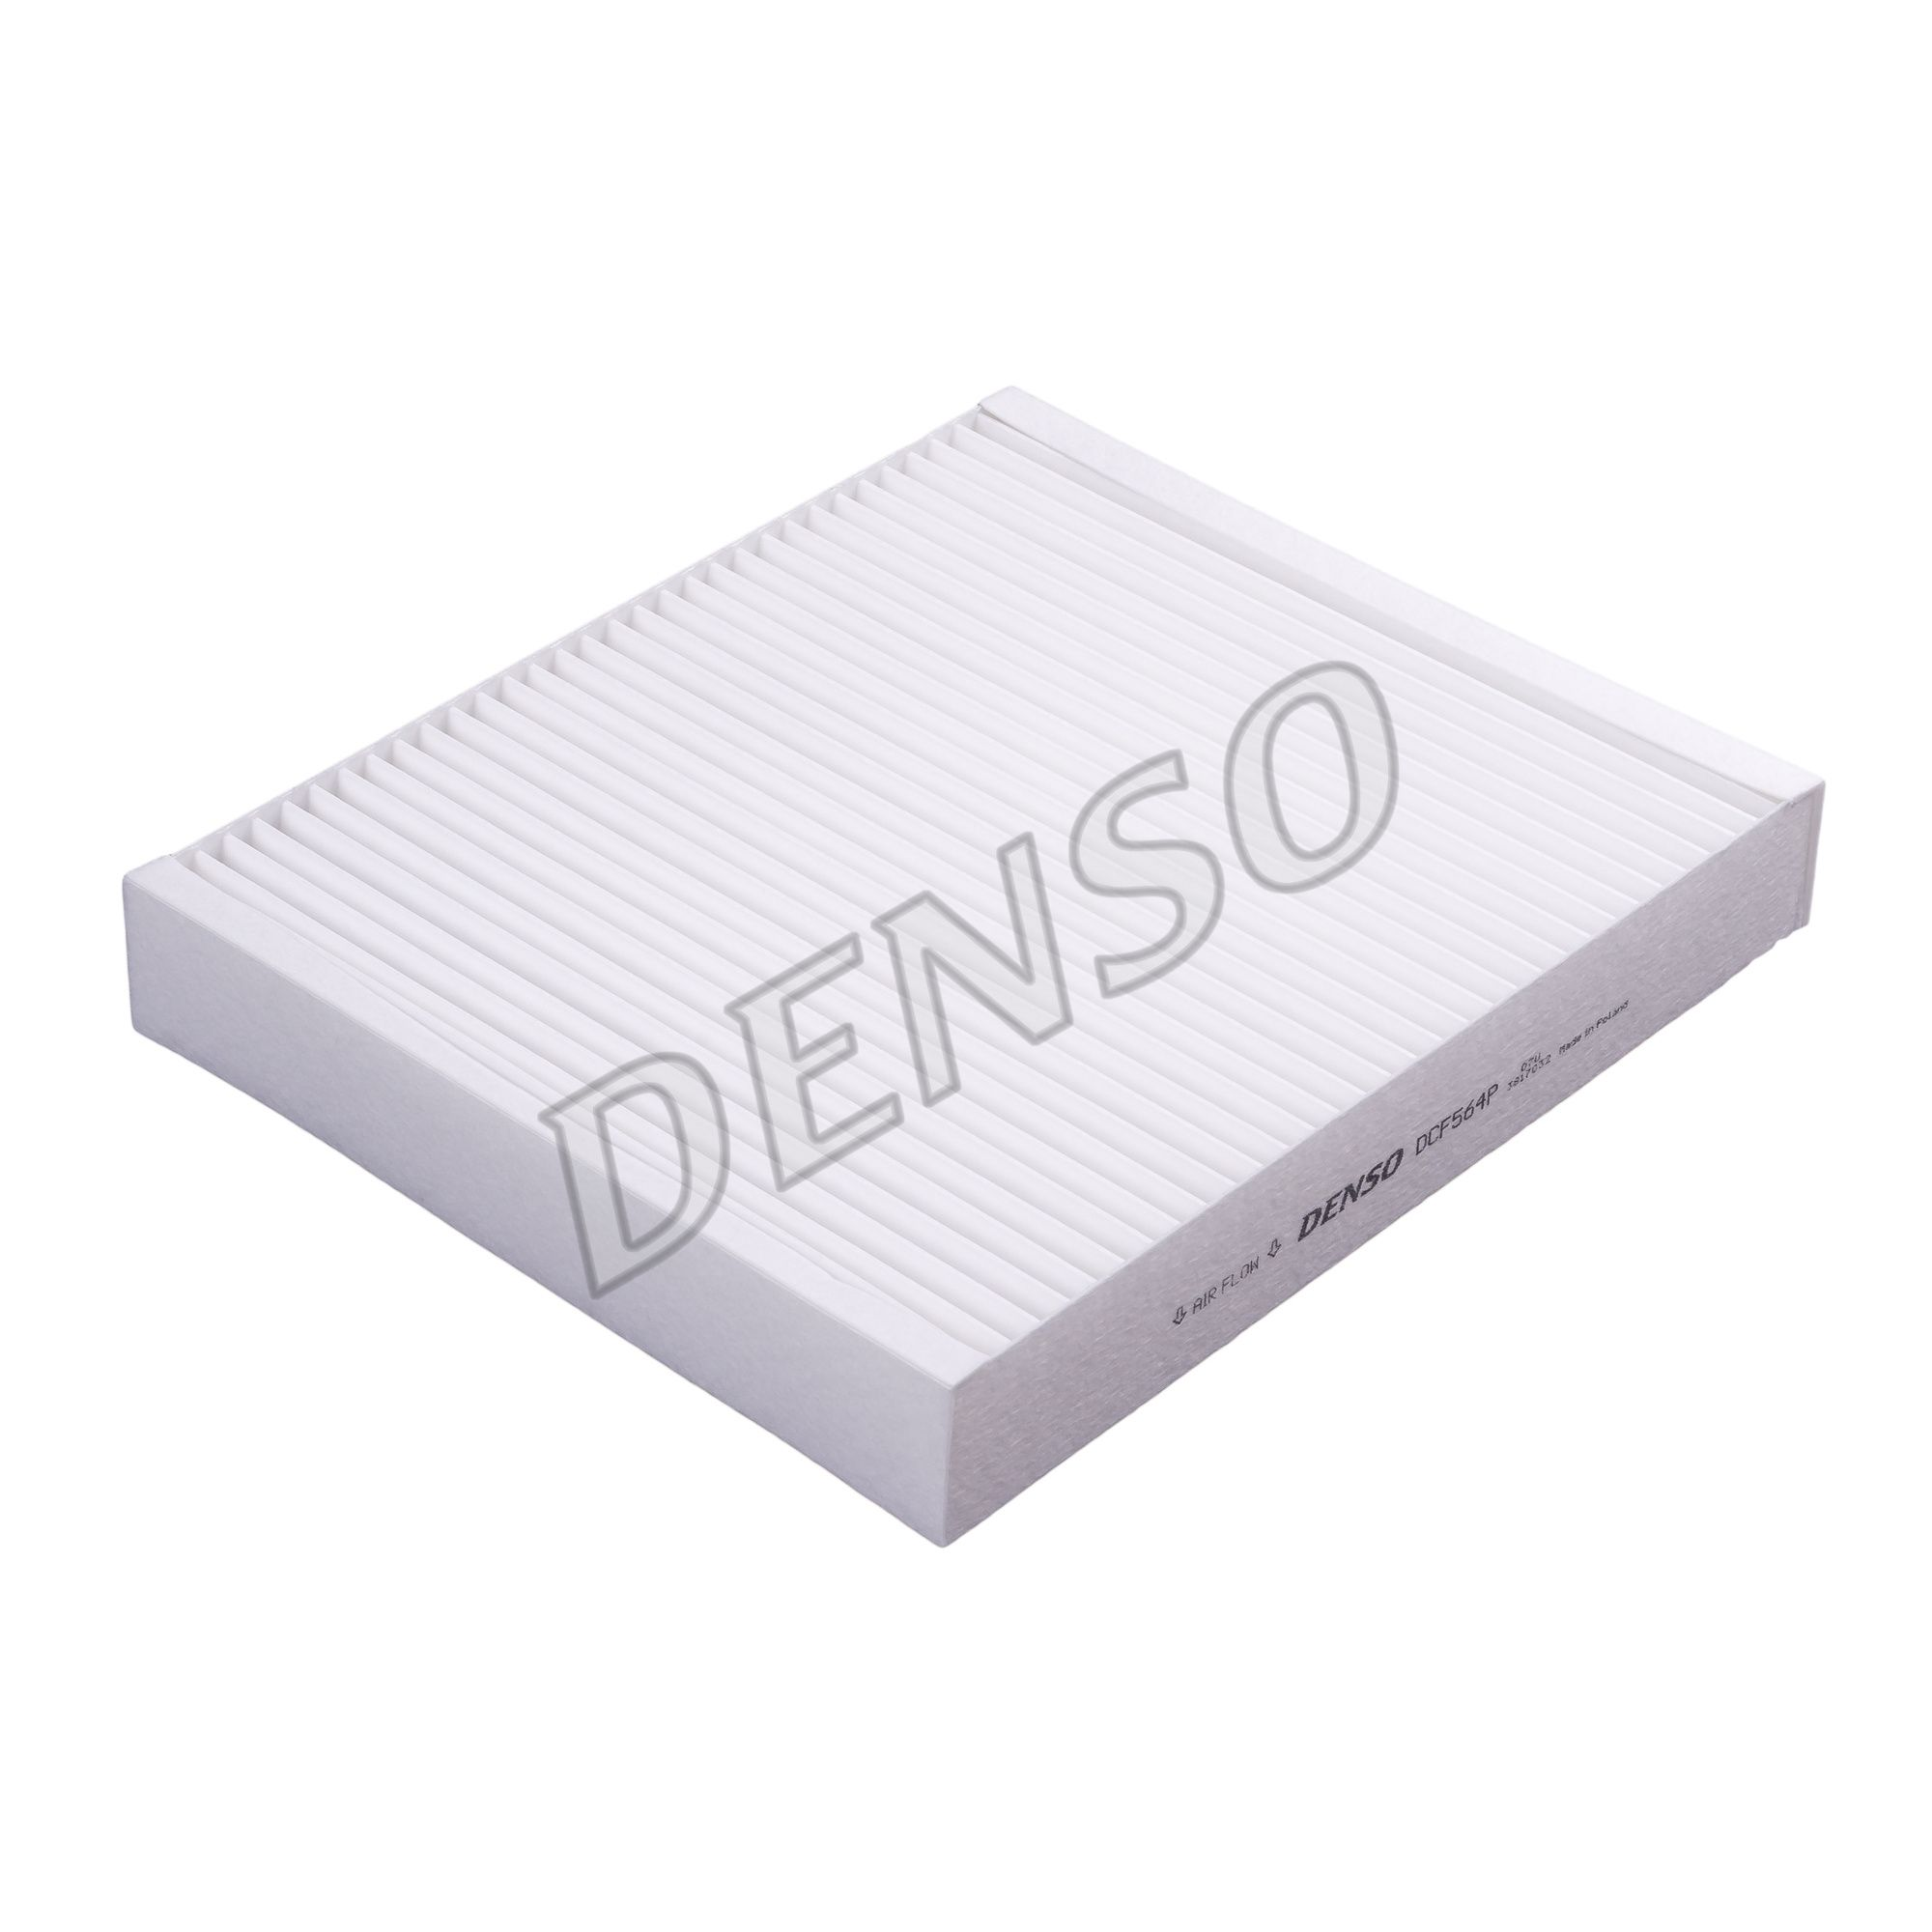 DENSO  DCF564P Filtro, aire habitáculo Long.: 240mm, Ancho: 204mm, Altura: 35mm